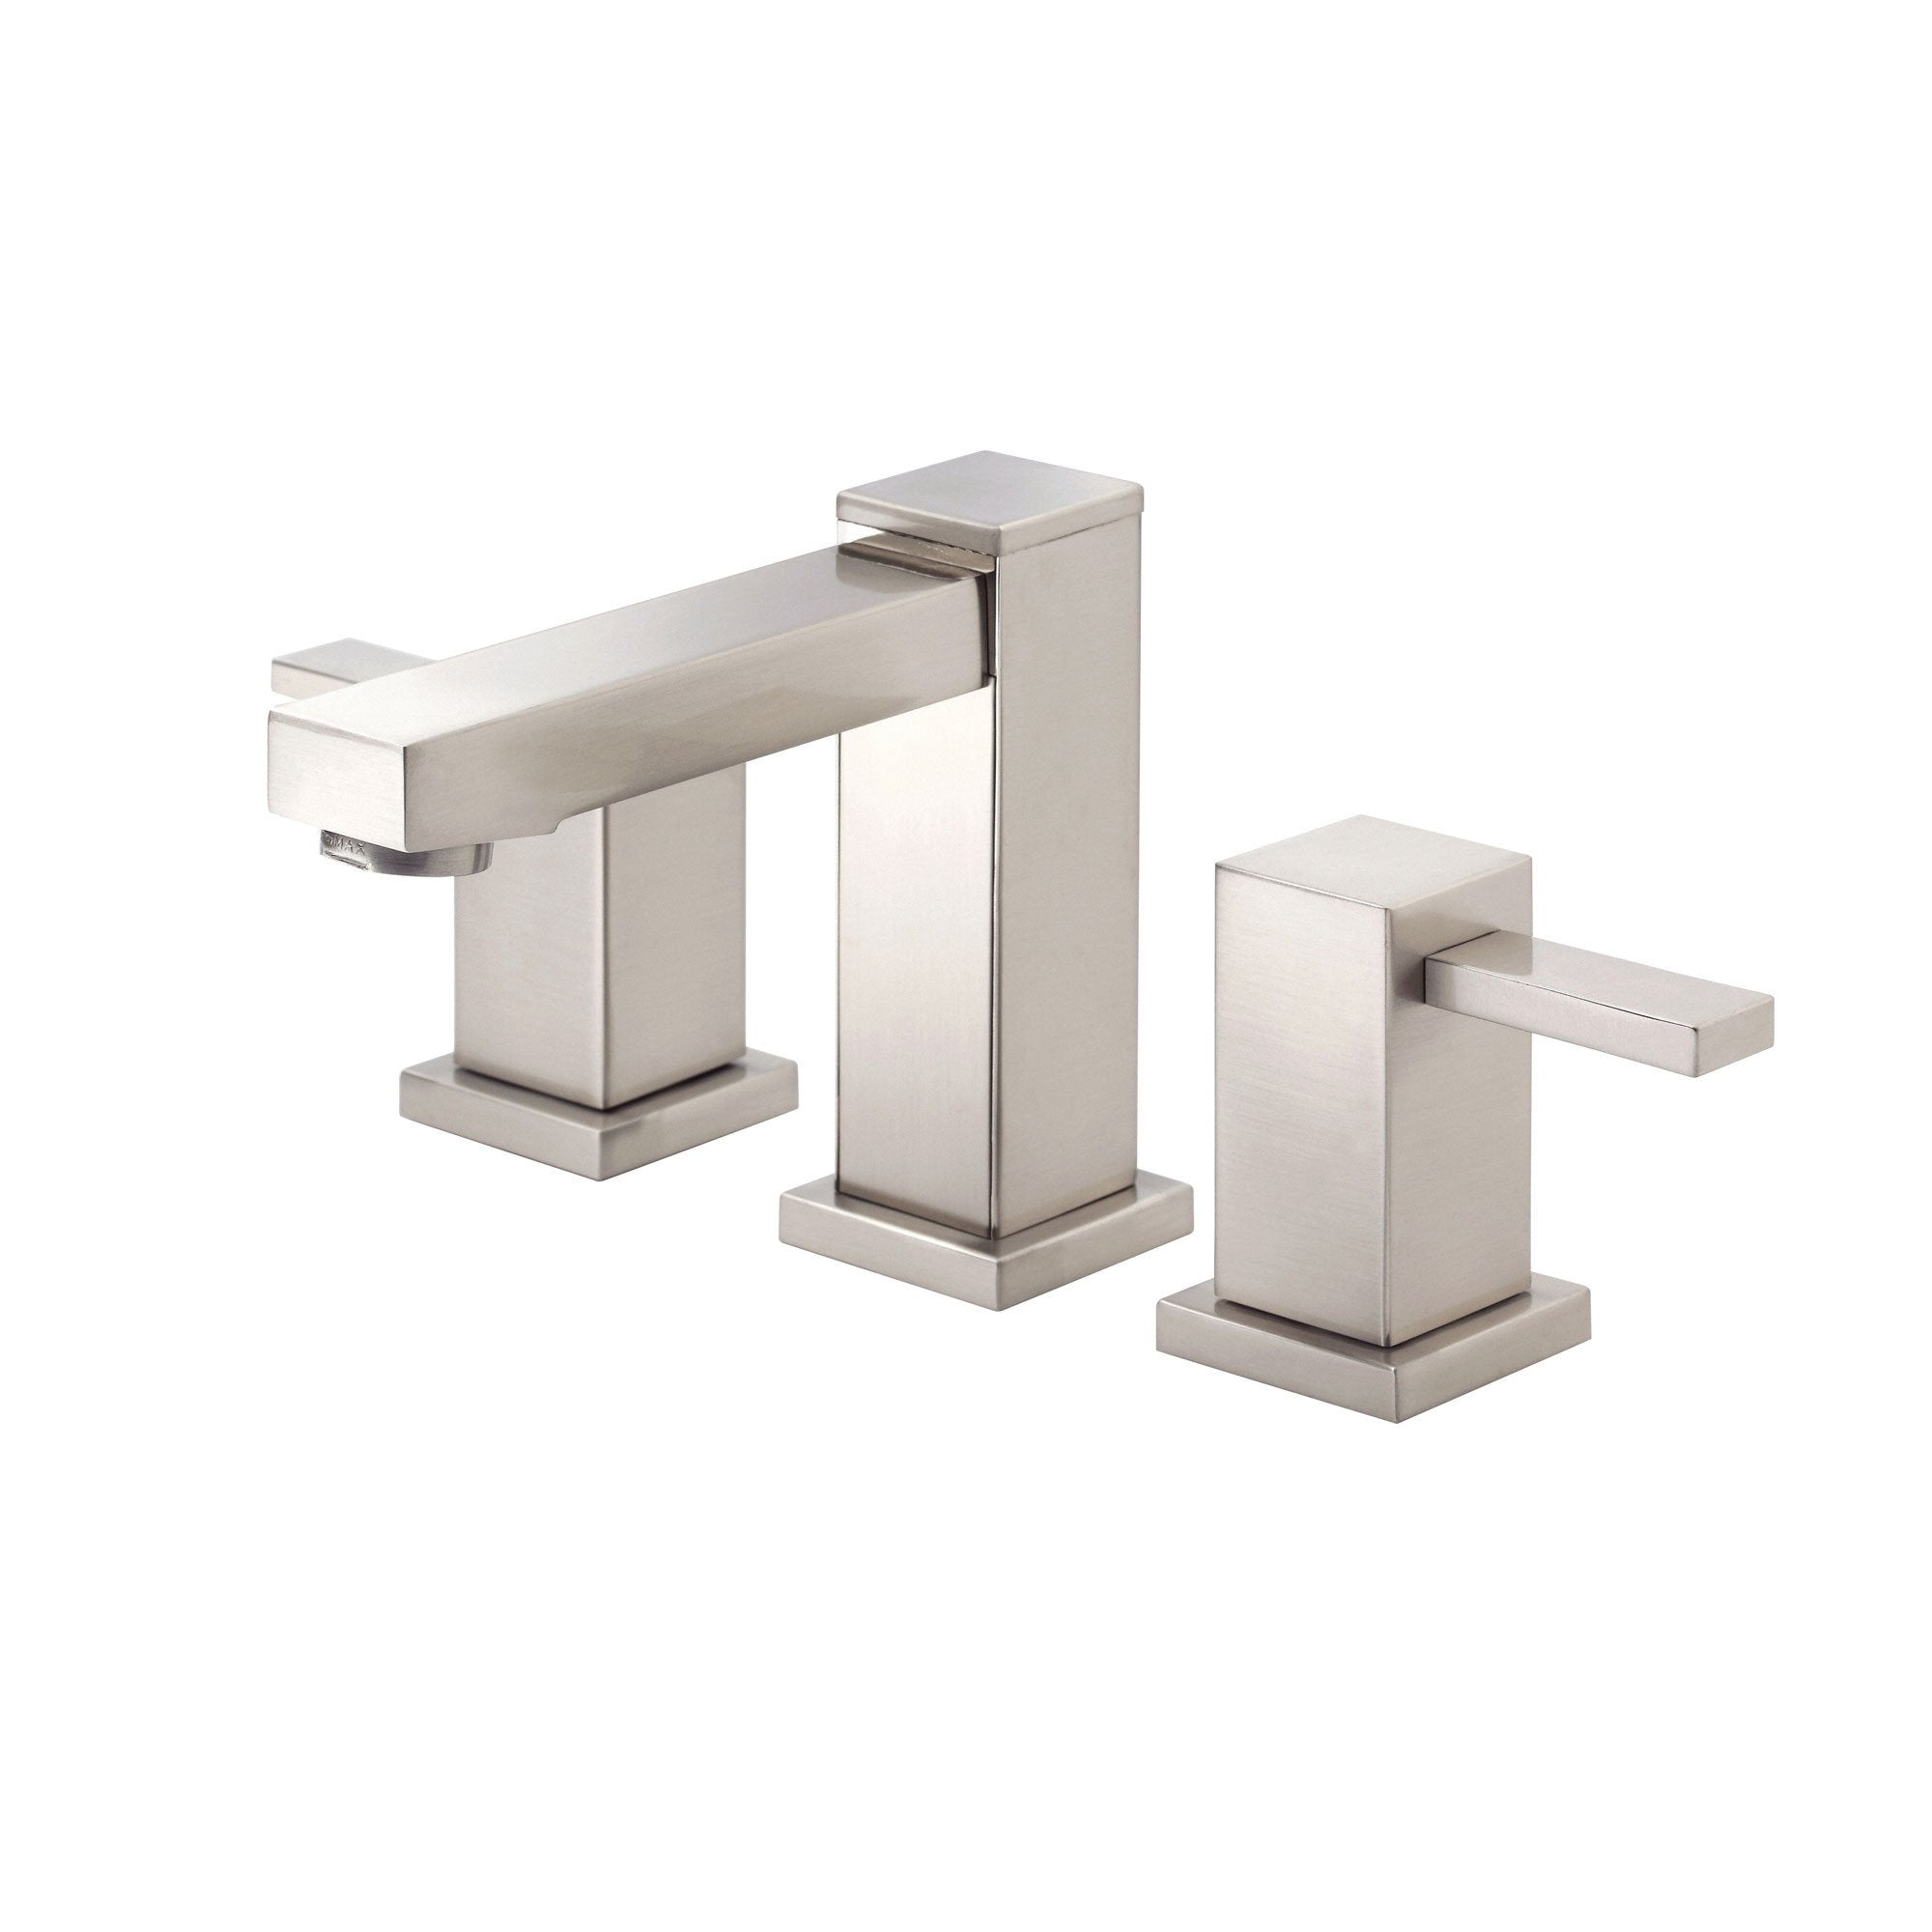 Danze Reef Brushed Nickel Modern Square 2 Handle Widespread